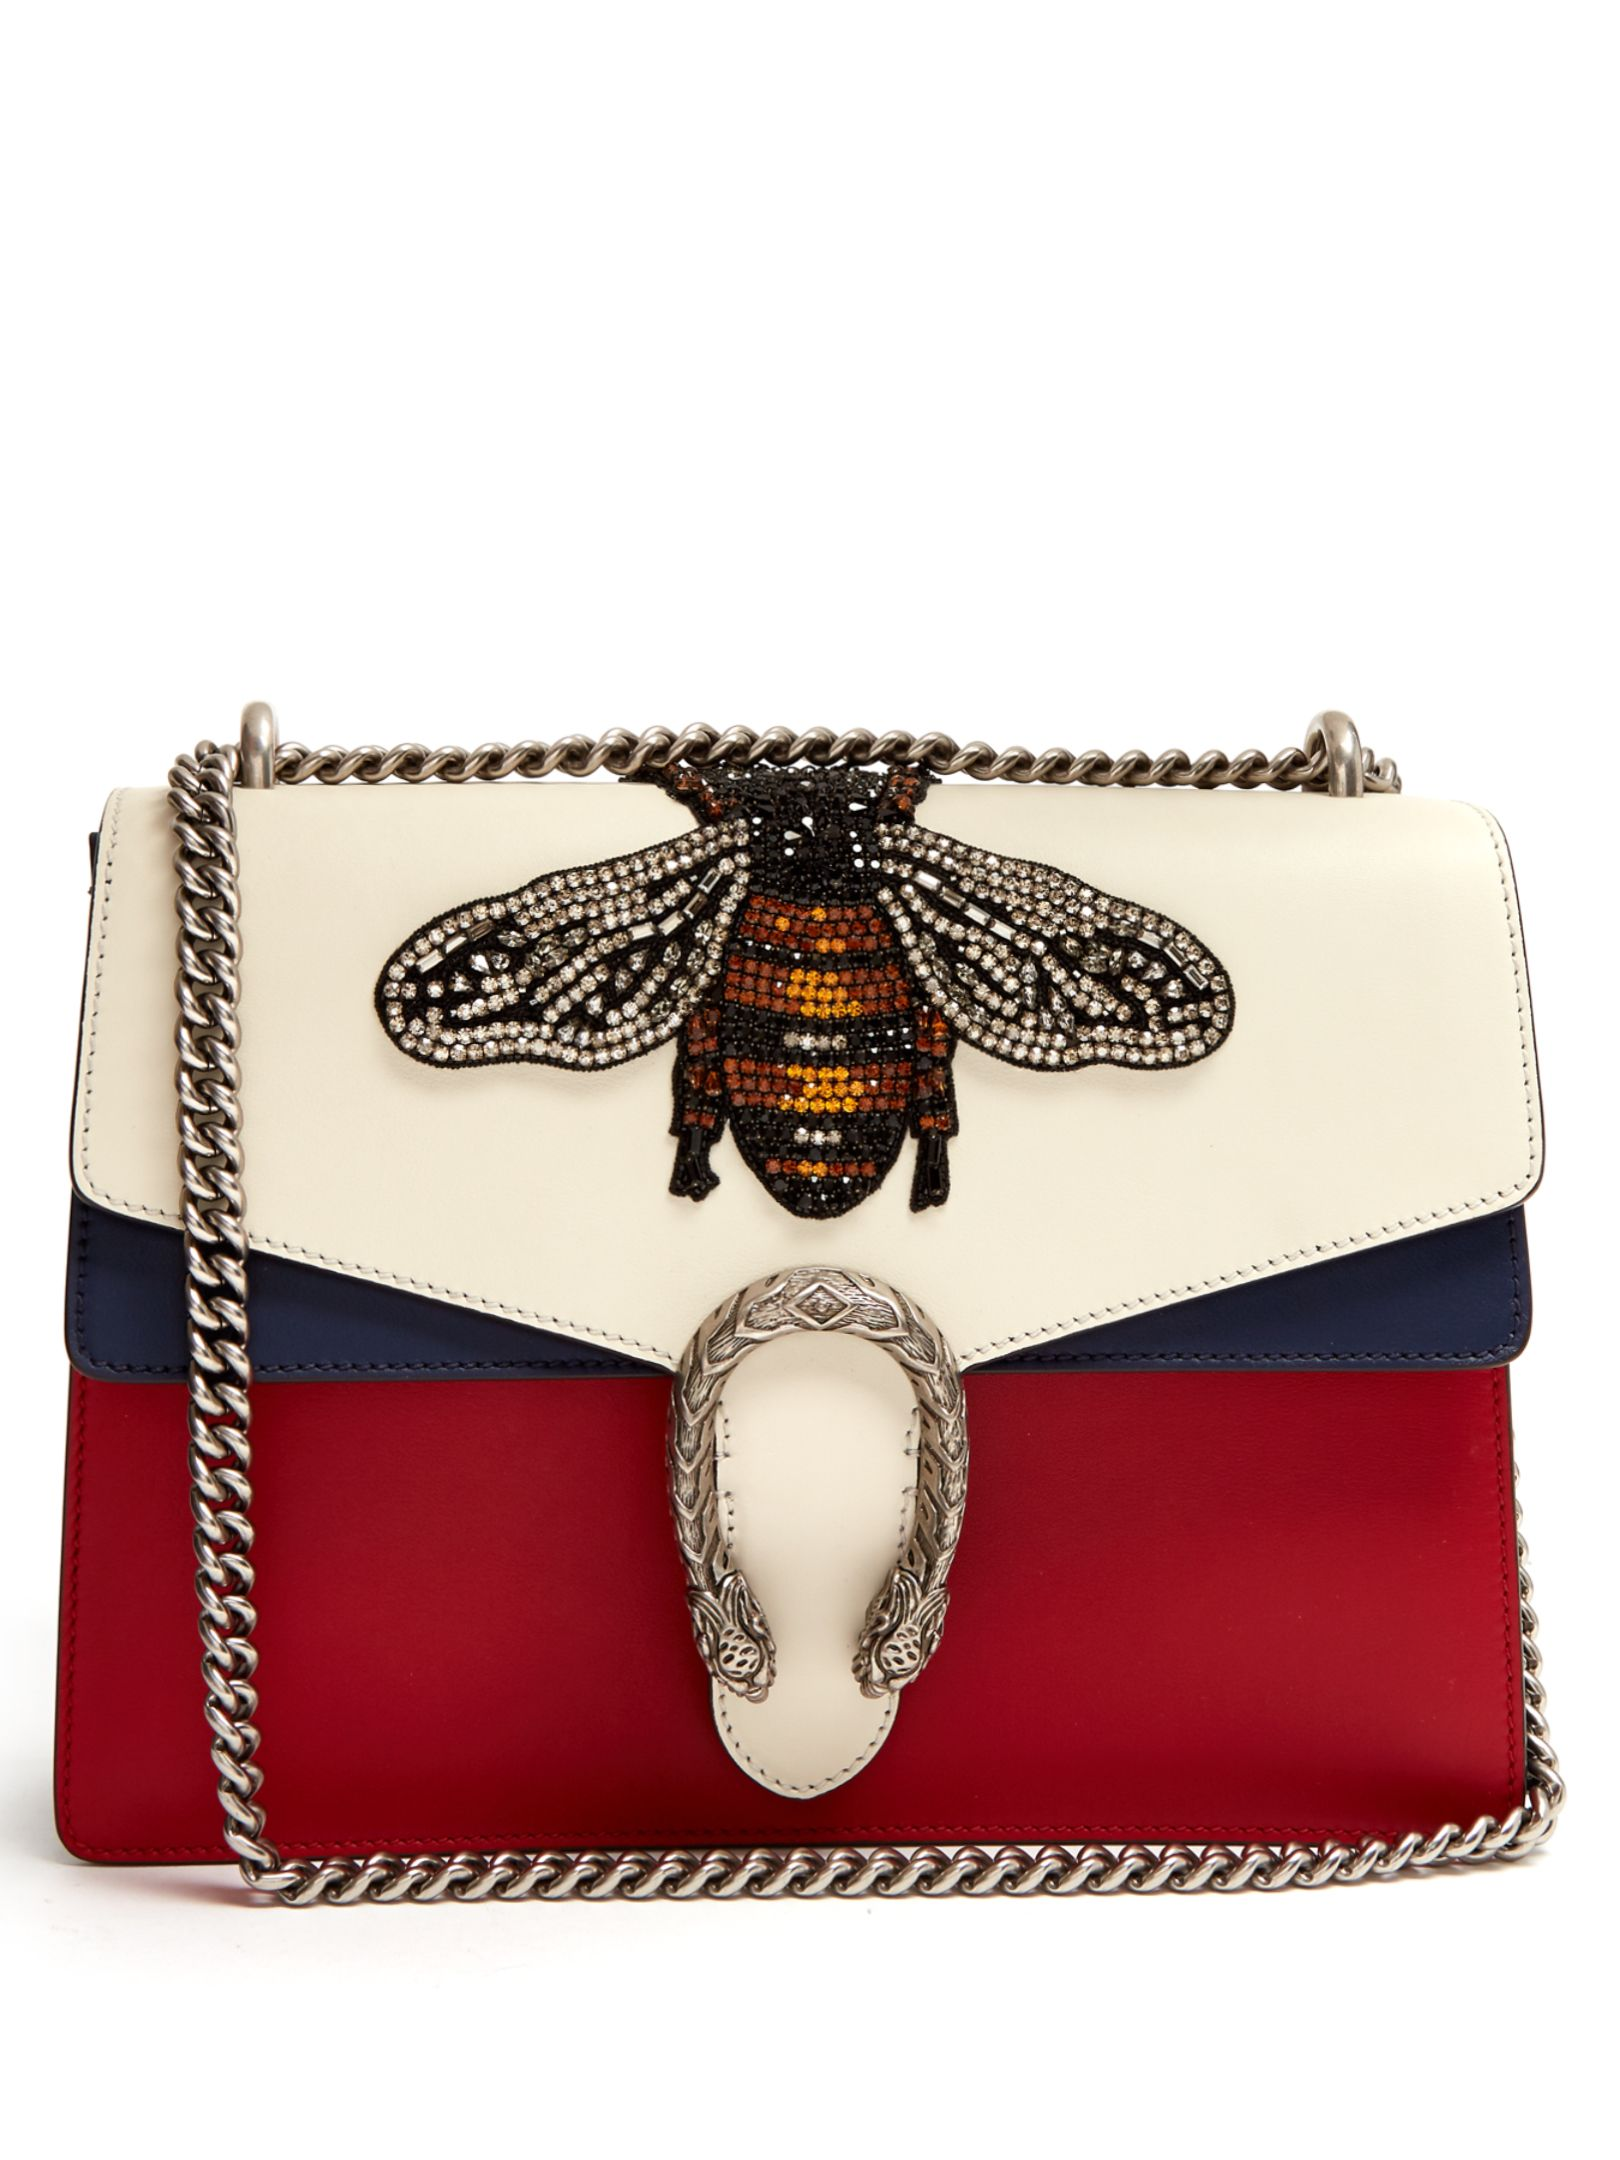 fe43149d580bf3 GUCCI Dionysus large bee appliqué shoulder bag | Bag Lady | Gucci ...